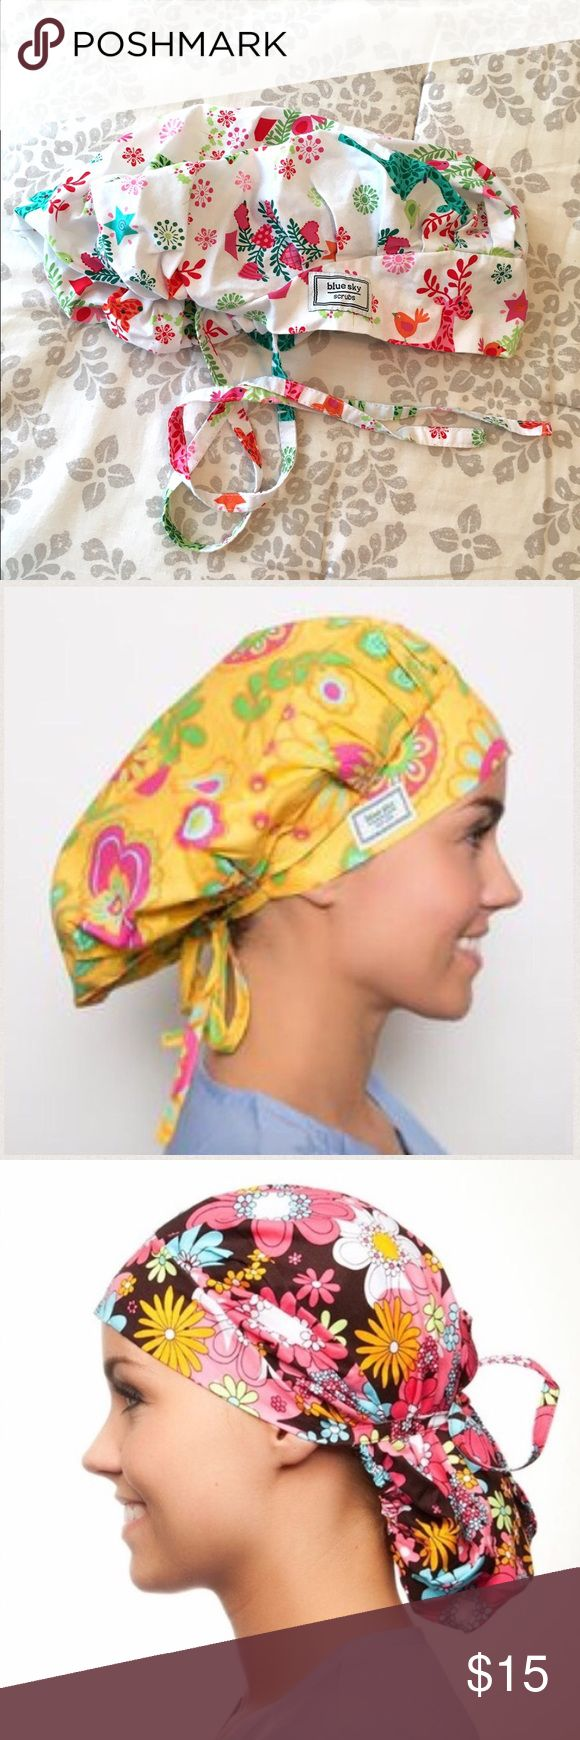 Blue Sky Scrubs Poppy Surgical Scrub Cap 😷 Blue Sky Scrubs Poppy Surgical Scrub Cap 😷, Christmas🎄Print! White background with Pinks, Greens, and Reds featuring Deer, Birds, and Snowflakes. Can be worn as full bouffant or pulled back with attached ties. Two hats in one!  Excellent condition. *Model pictures are for cap style reference only.* Blue Sky Scrubs Other